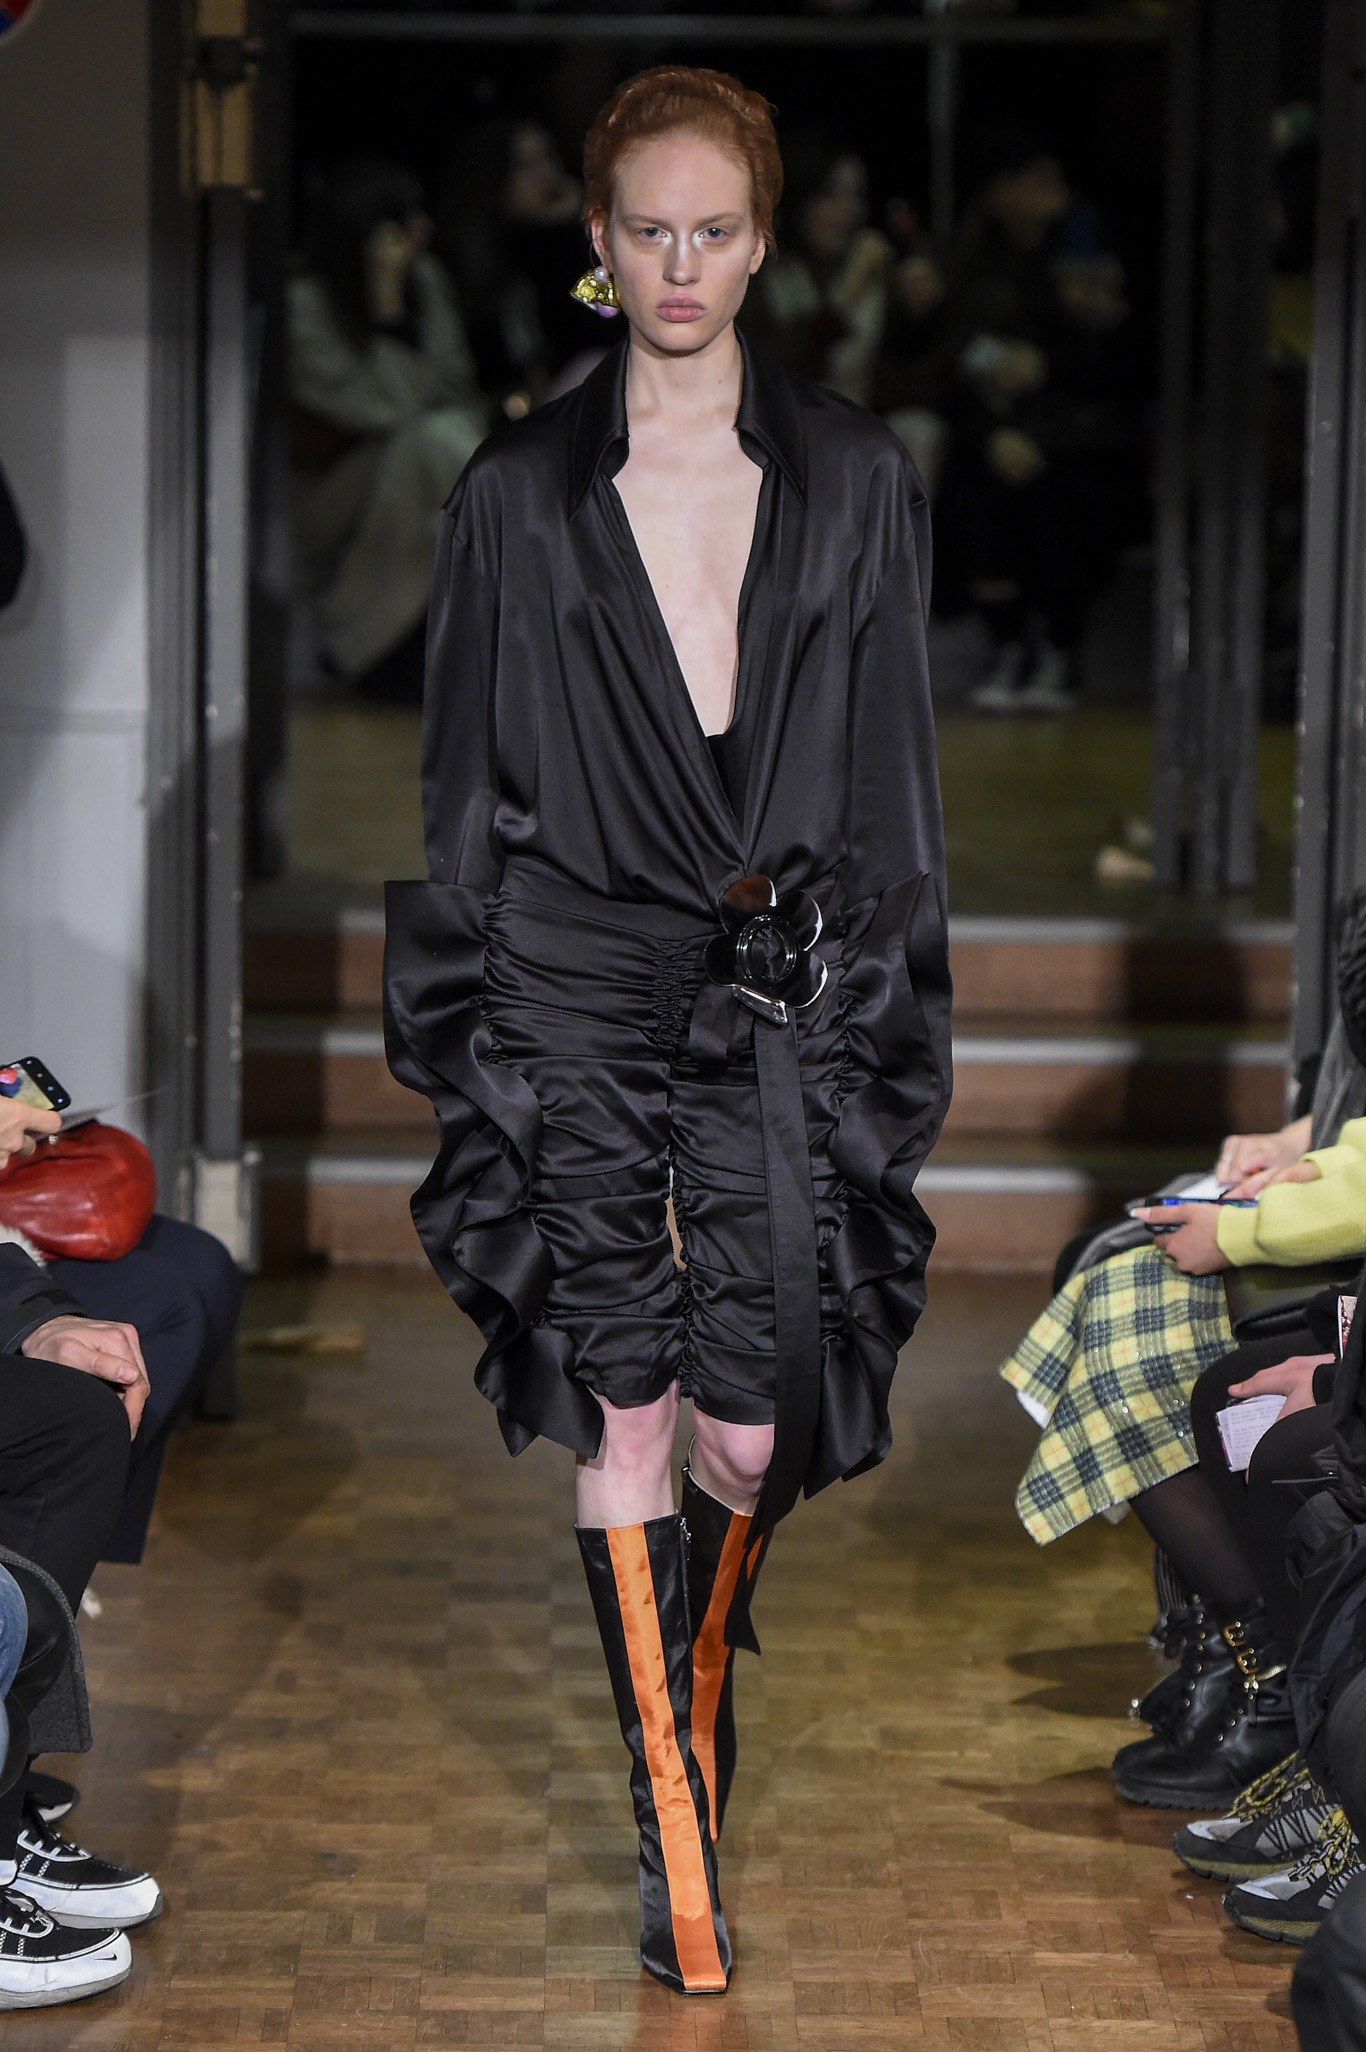 Neith Nyer RTW Fall 2018